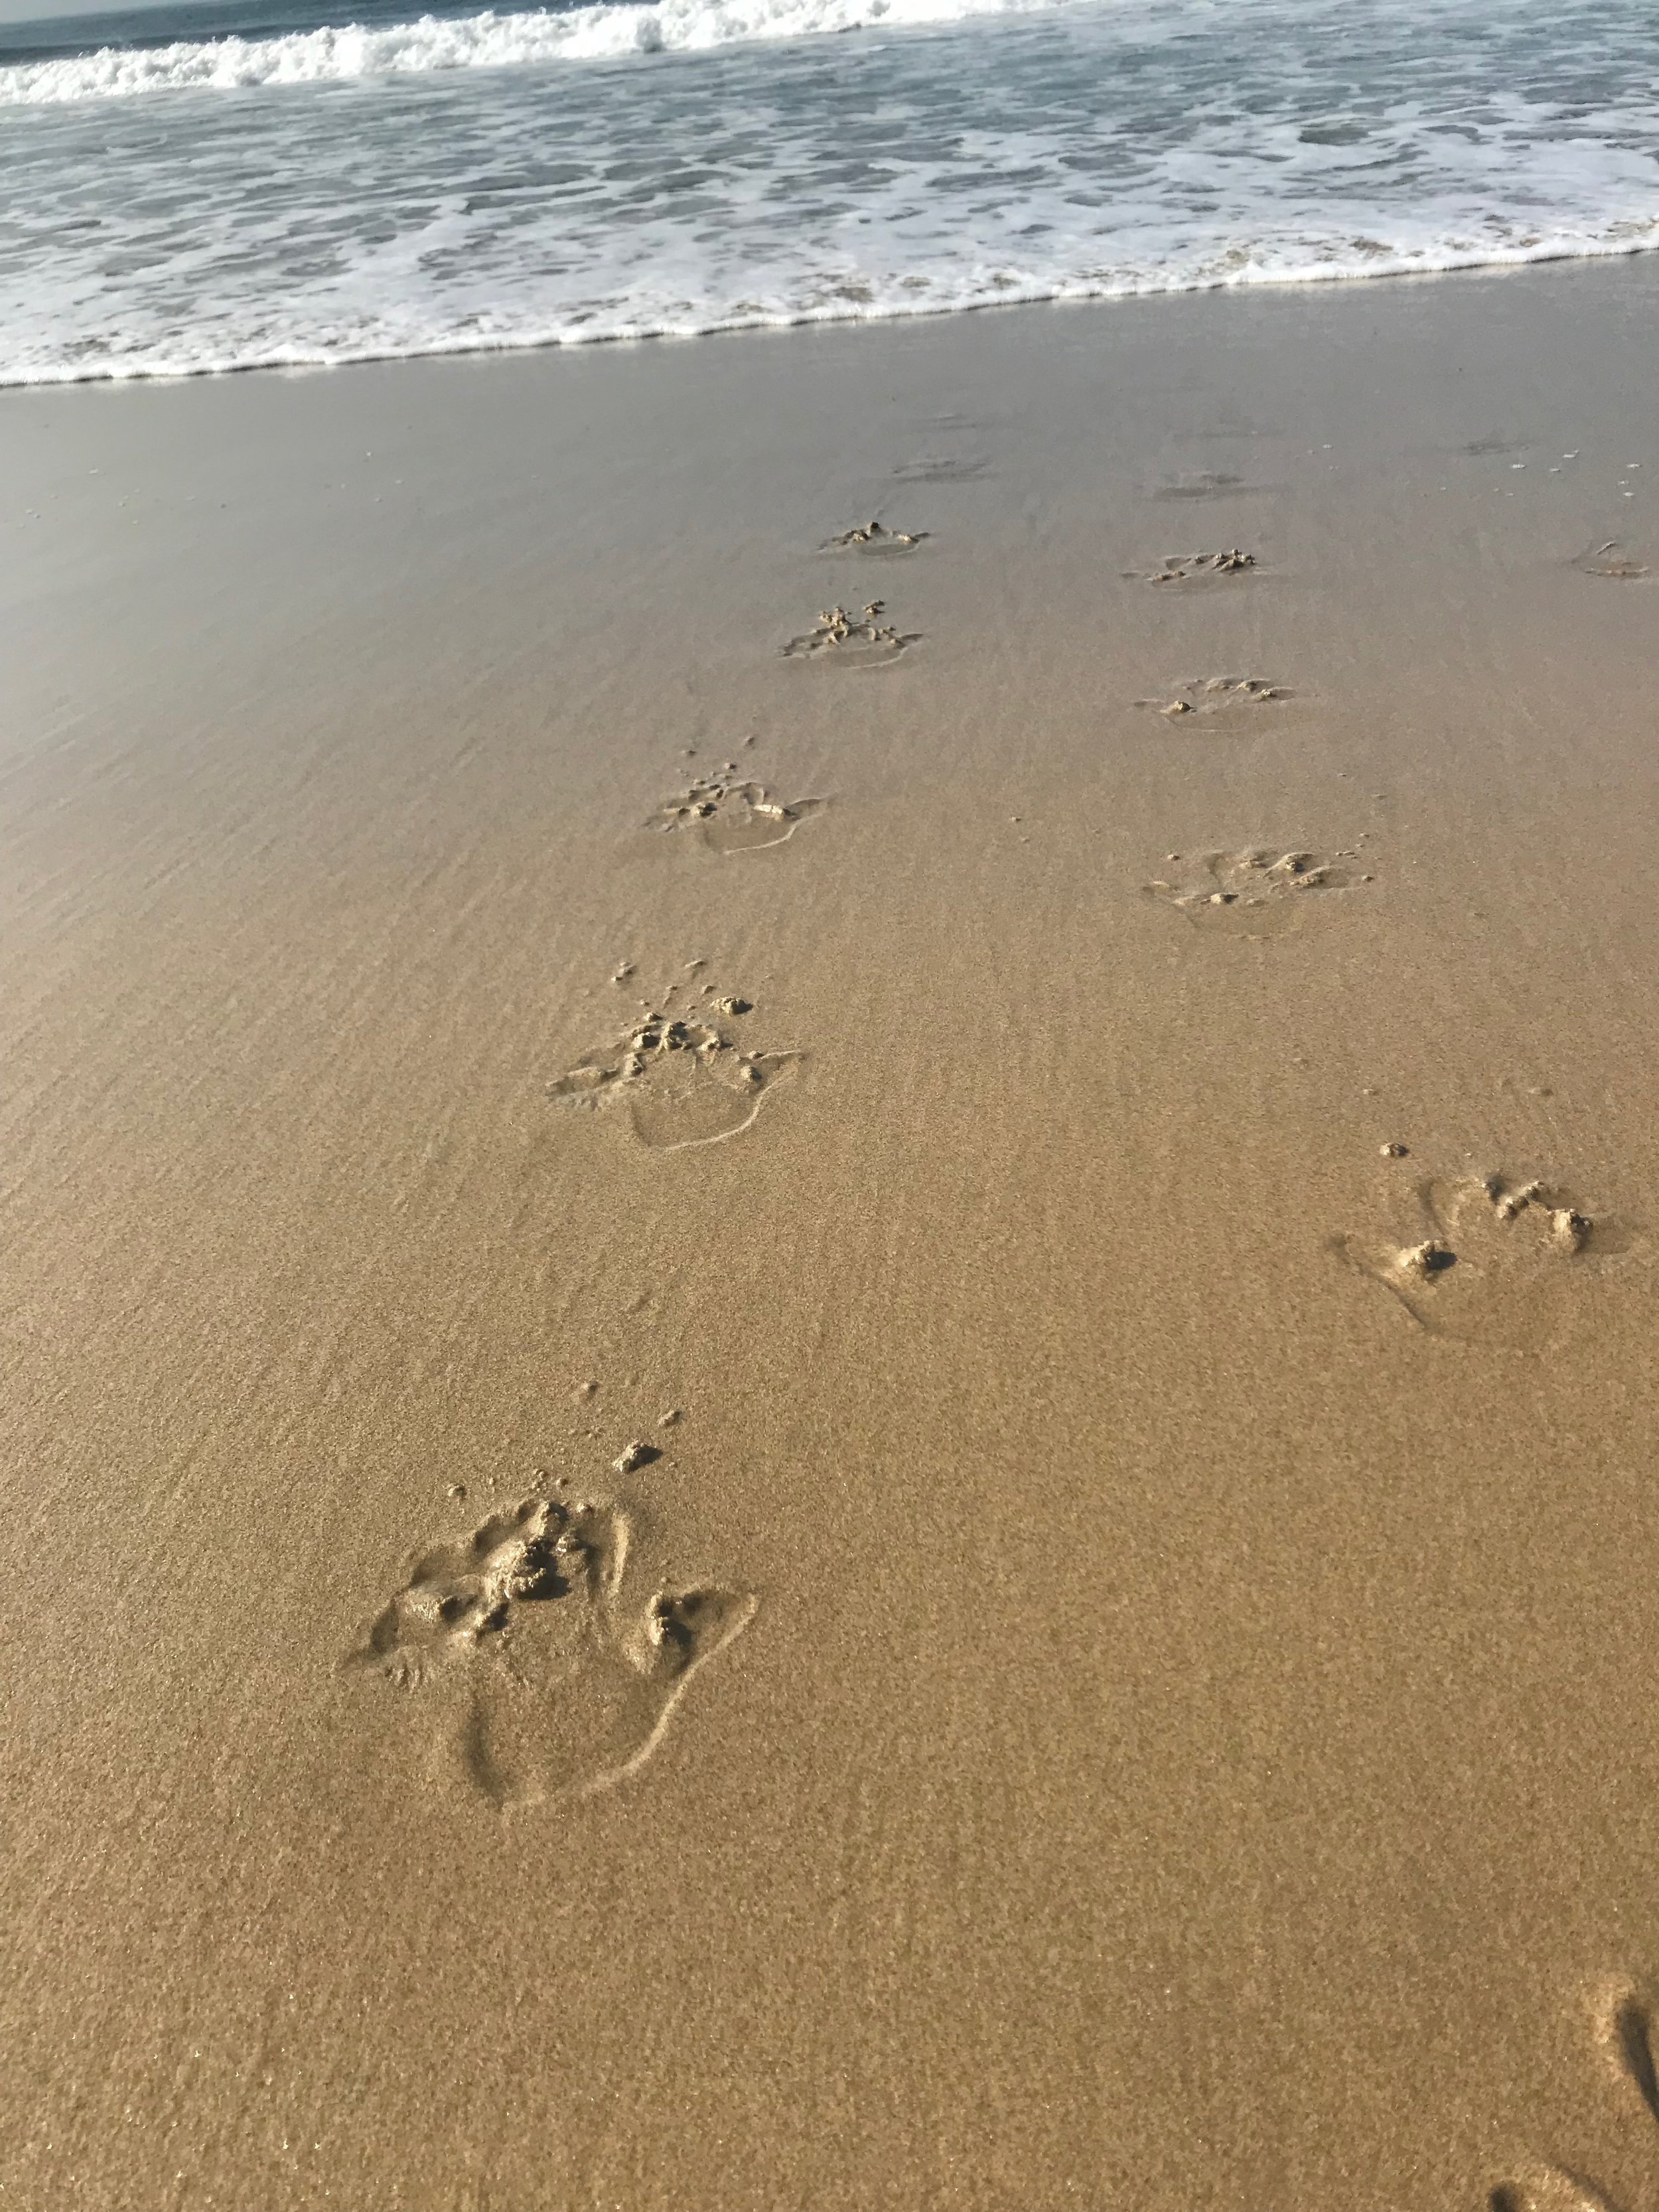 The prints I left in the sand that time I walked into the Pacific on my hands. (I came back.)